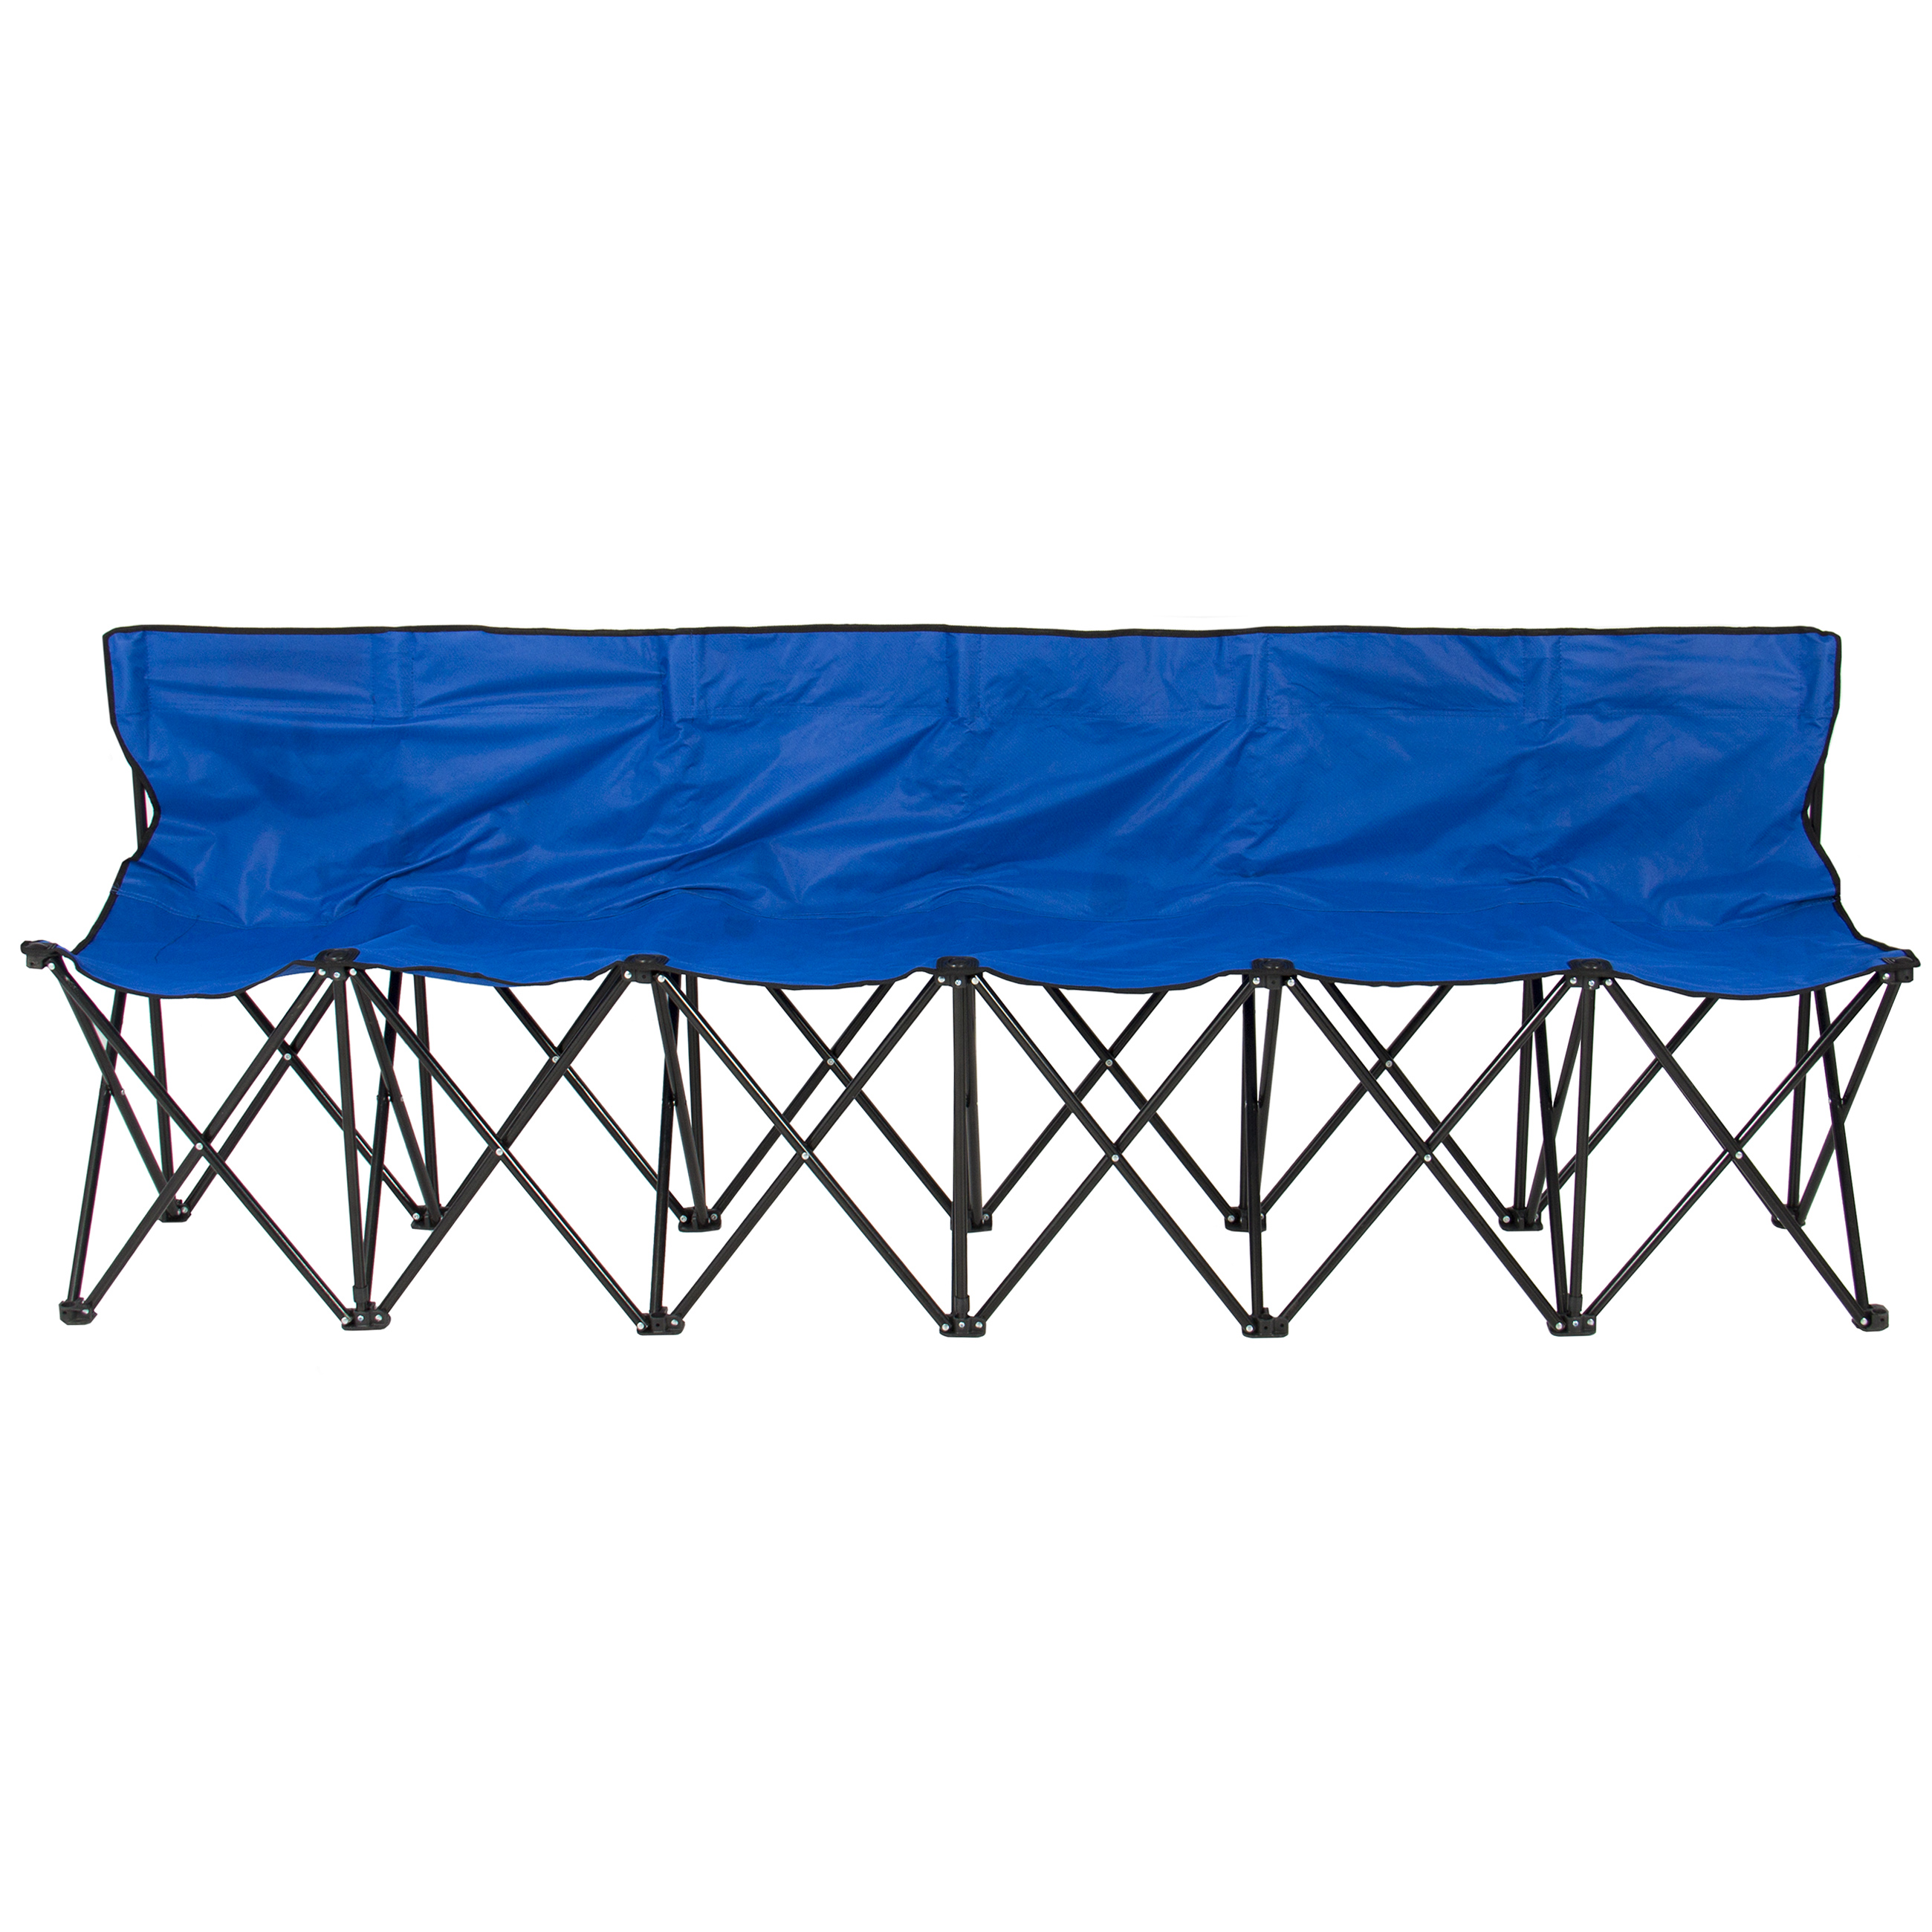 6 Seat Folding Bench Sports Sideline Chairs Portable With Carrying ...